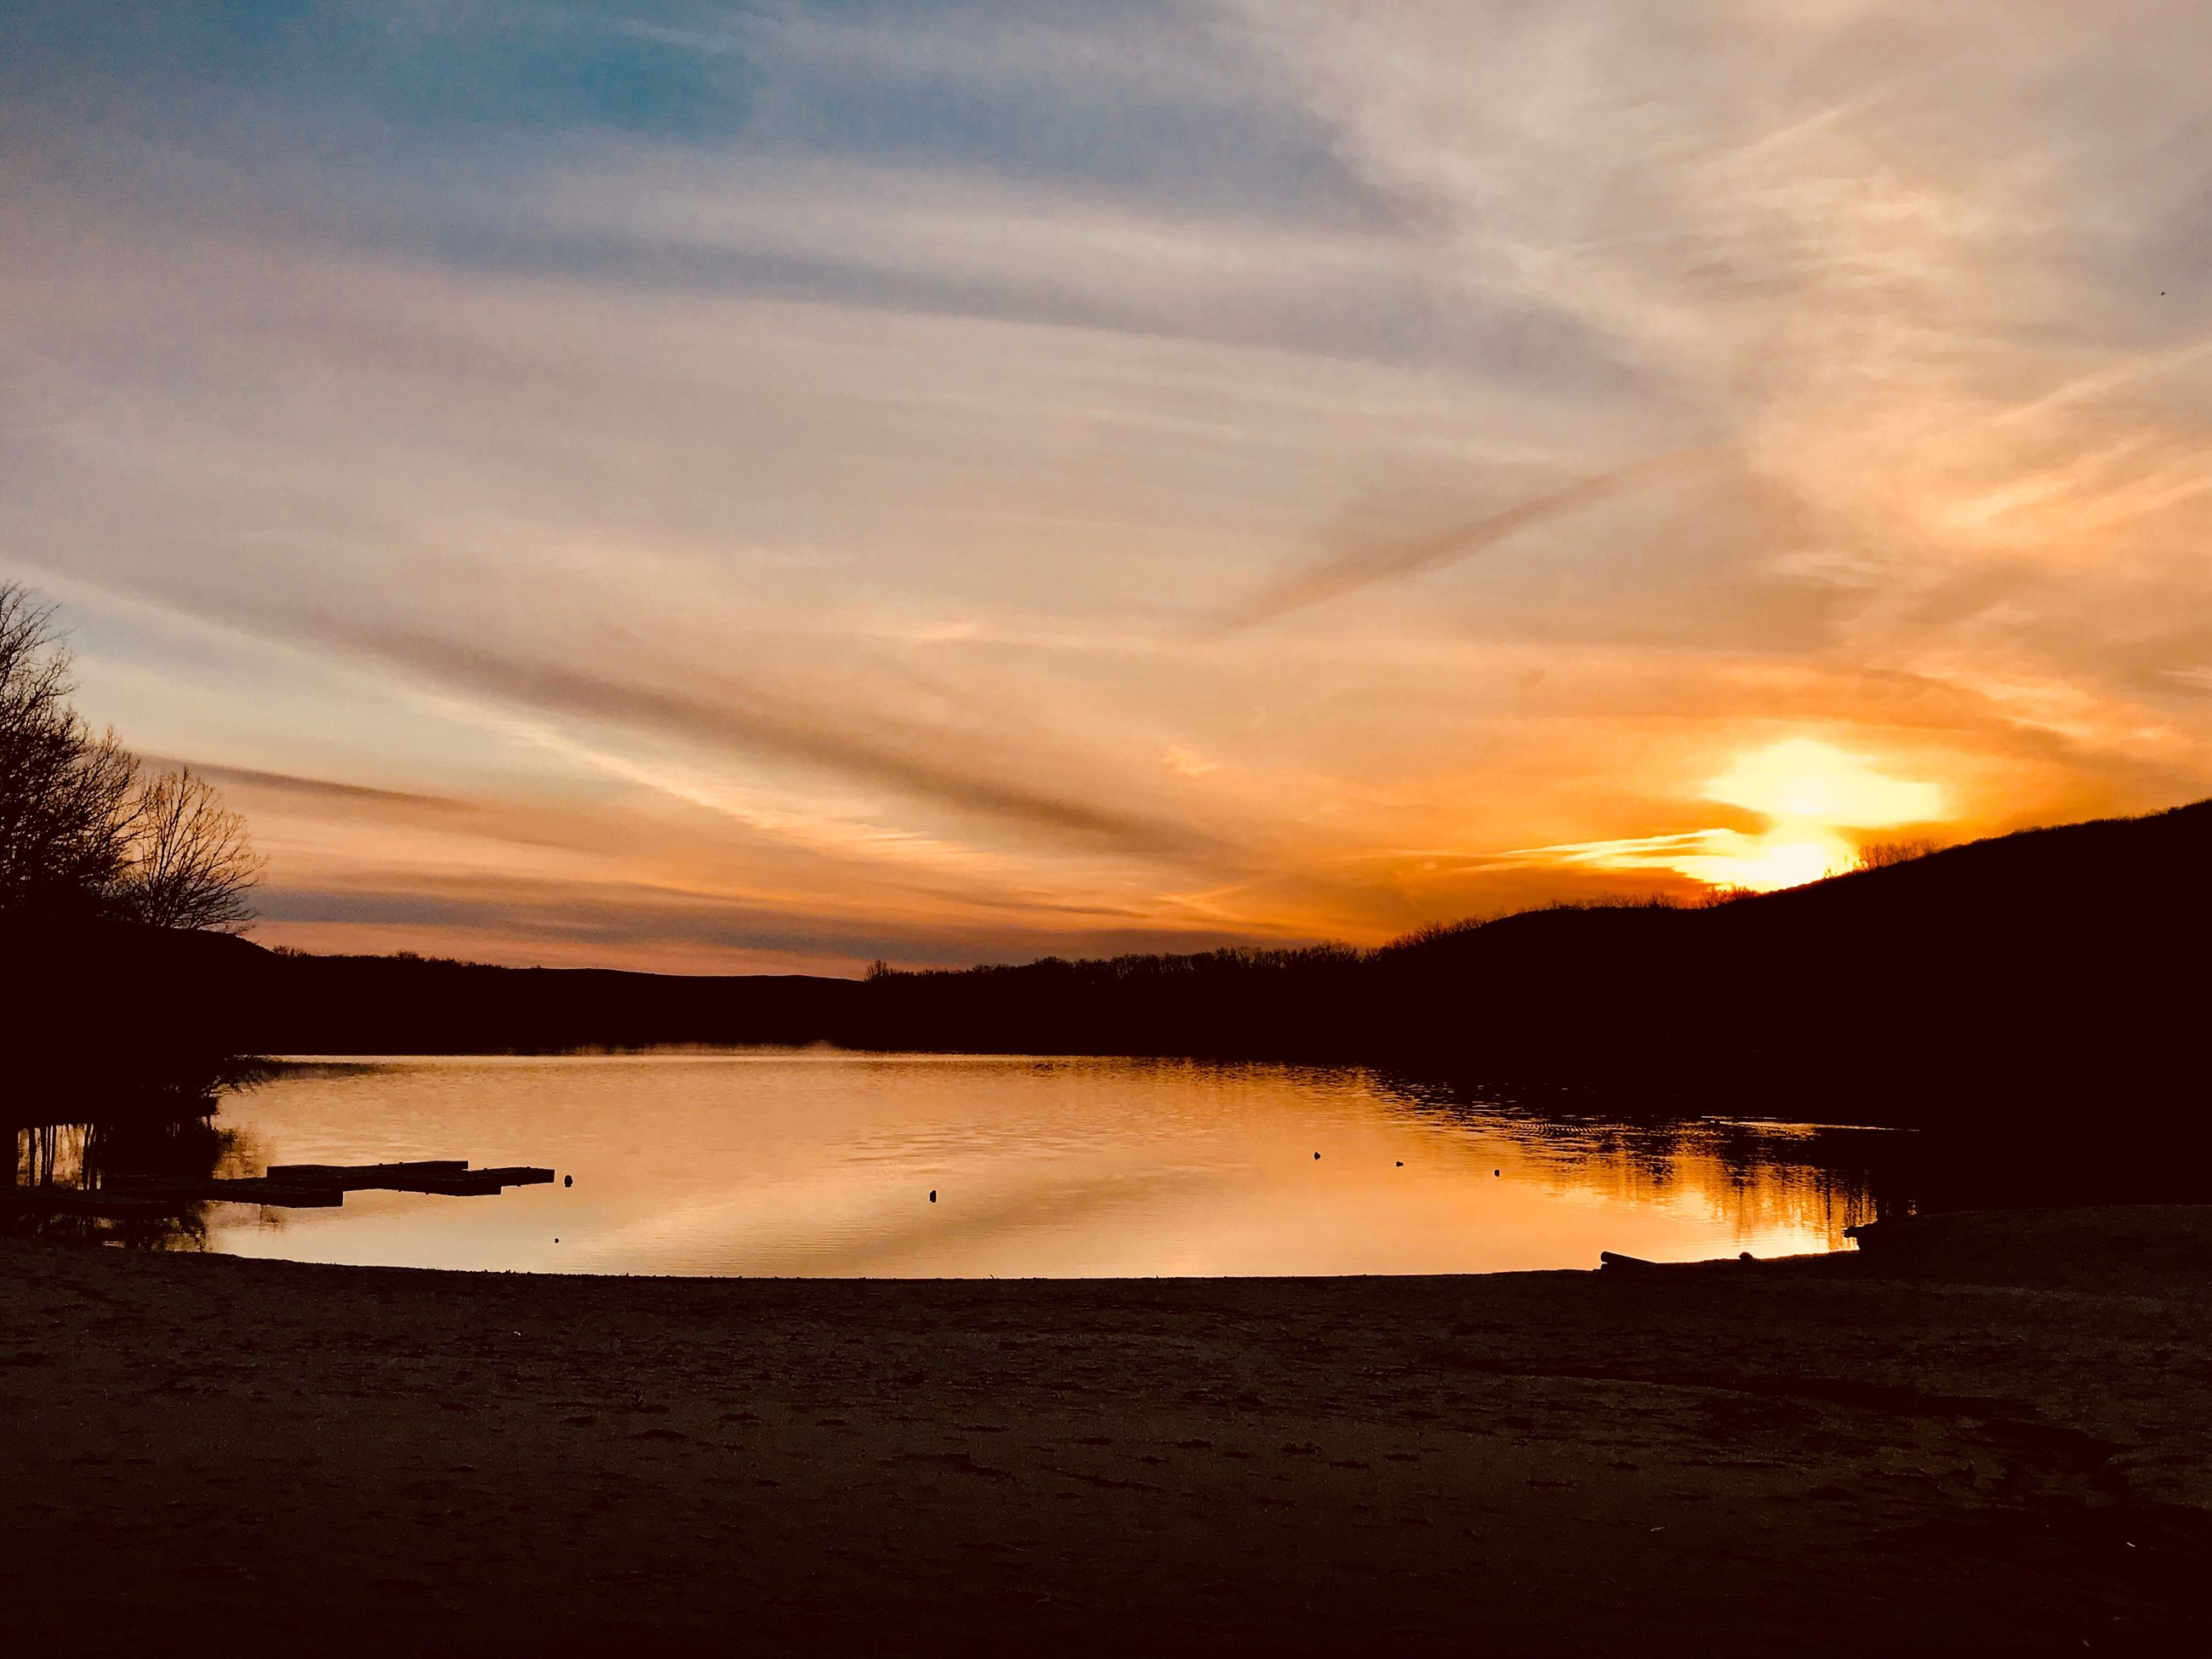 water, sky, sunset, scenics - nature, tranquility, tranquil scene, beauty in nature, cloud - sky, lake, nature, silhouette, orange color, beach, reflection, no people, idyllic, land, non-urban scene, outdoors